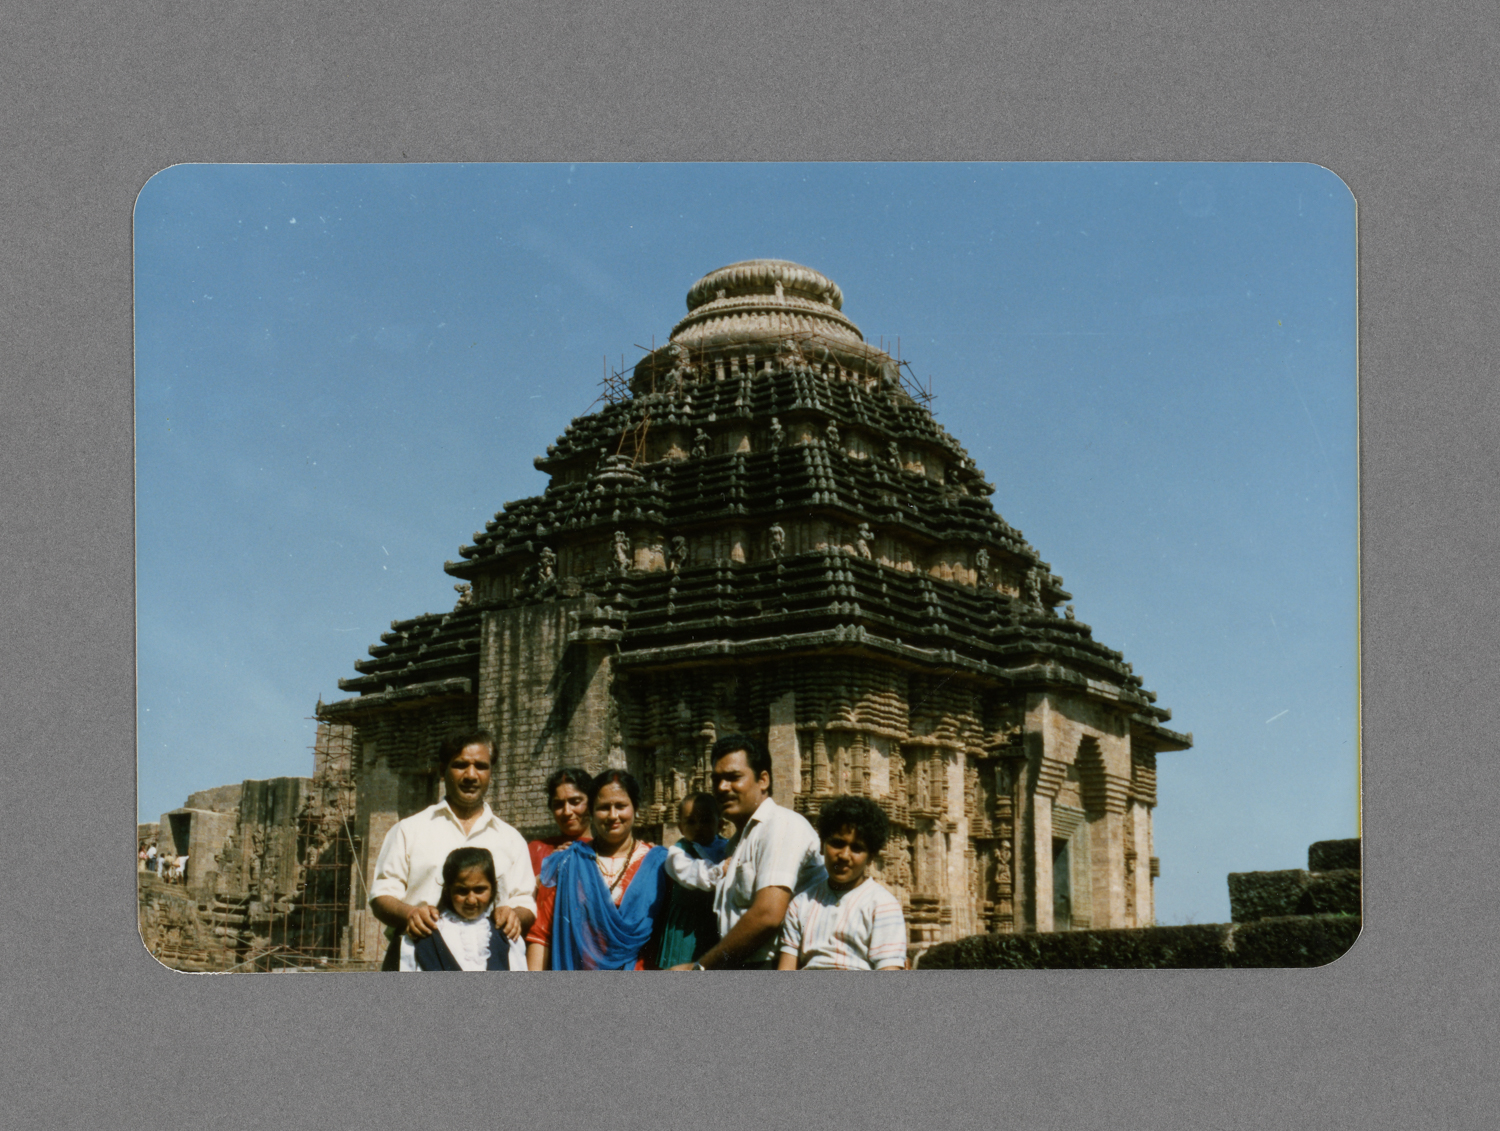 Jagannath Temple, Odisha, India c.1986